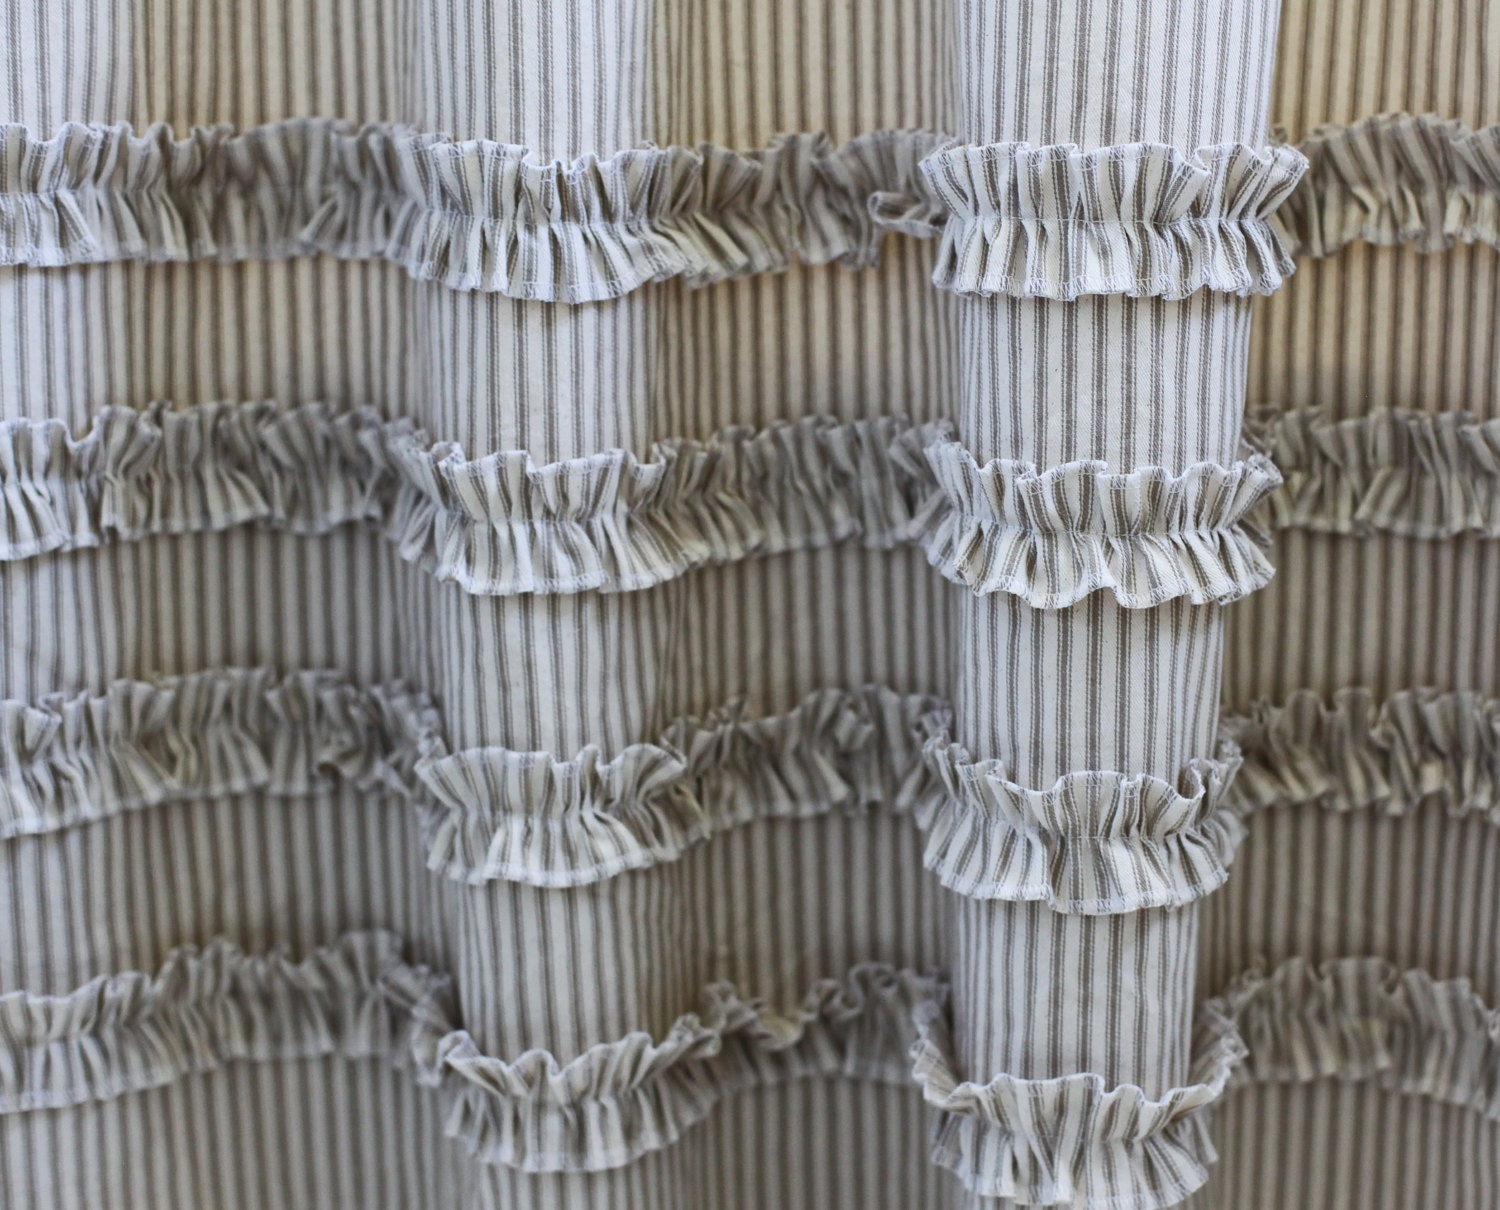 Vintage Ticking Stripe Shower Curtain With Ruffles 4 Colors